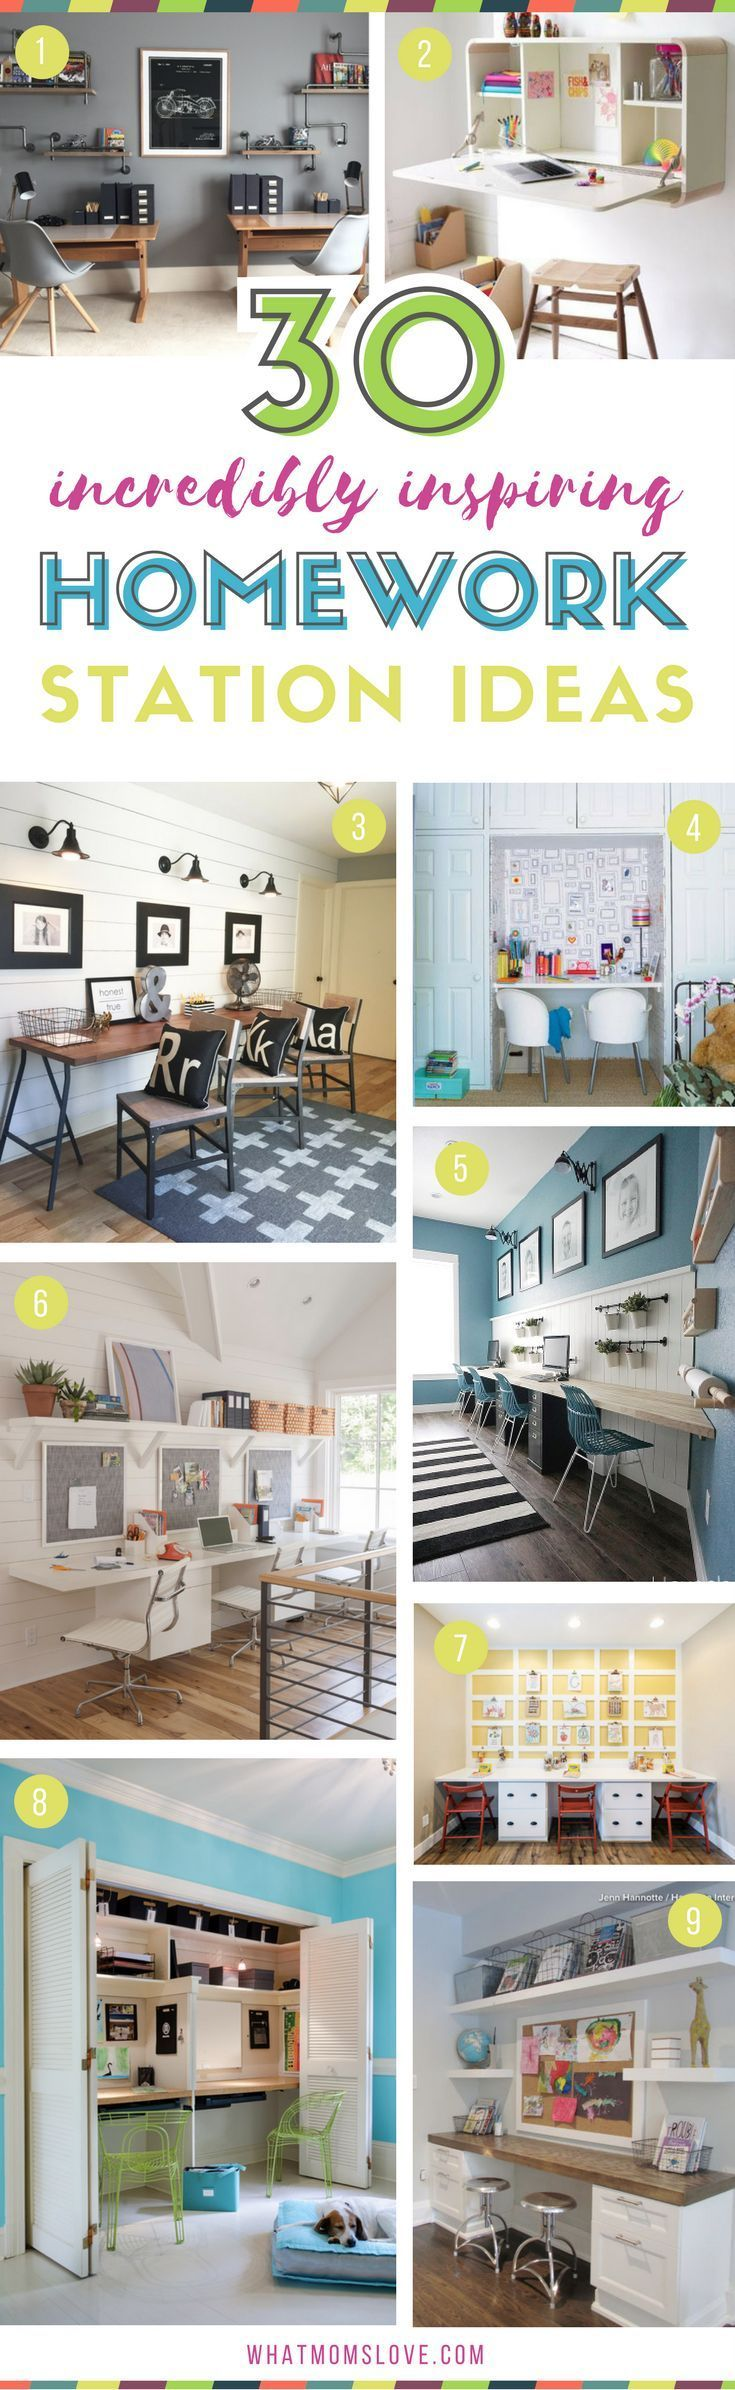 Homework Station Organization Ideas for kids | How to create a DIY study space at home for elementary school kids to teens. Incredible tips, hacks and motivation | Many are DIY and portable - great for small spaces!